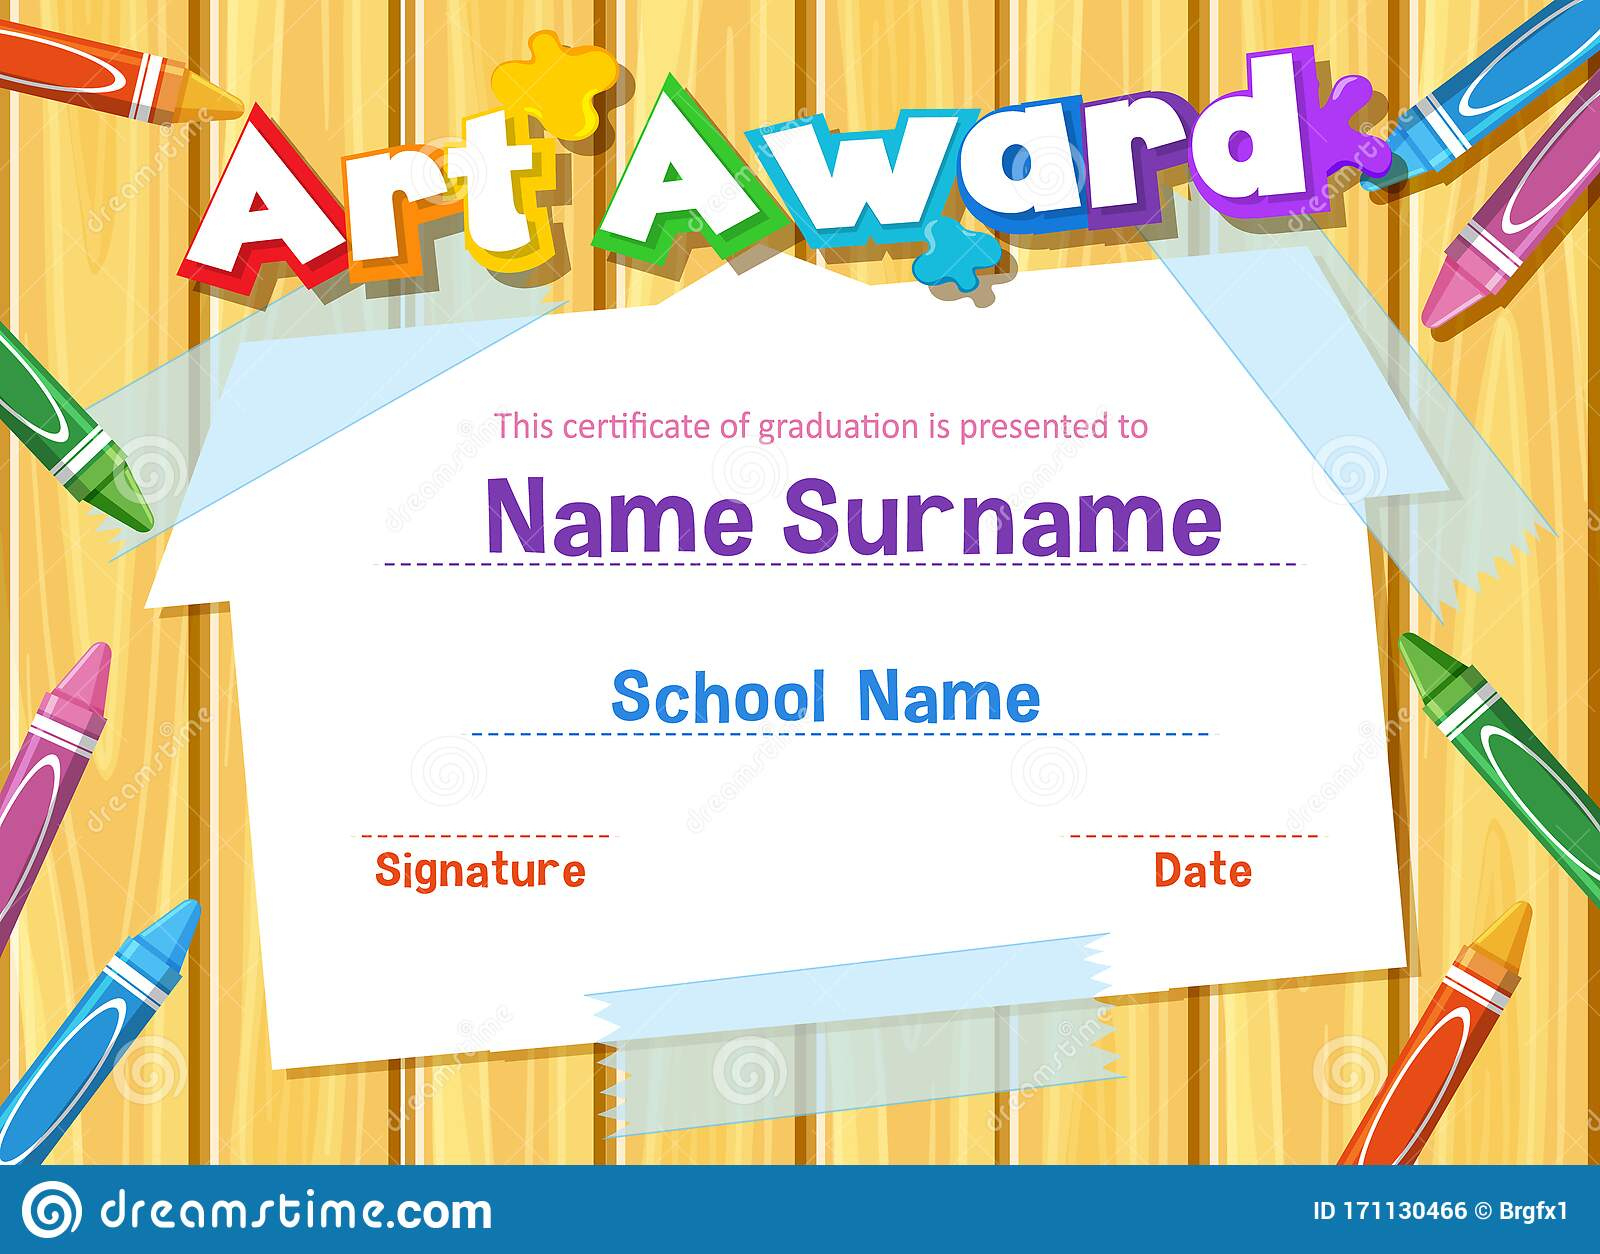 Certificate Template For Art Award With Crayons In with regard to Free Art Award Certificate Template